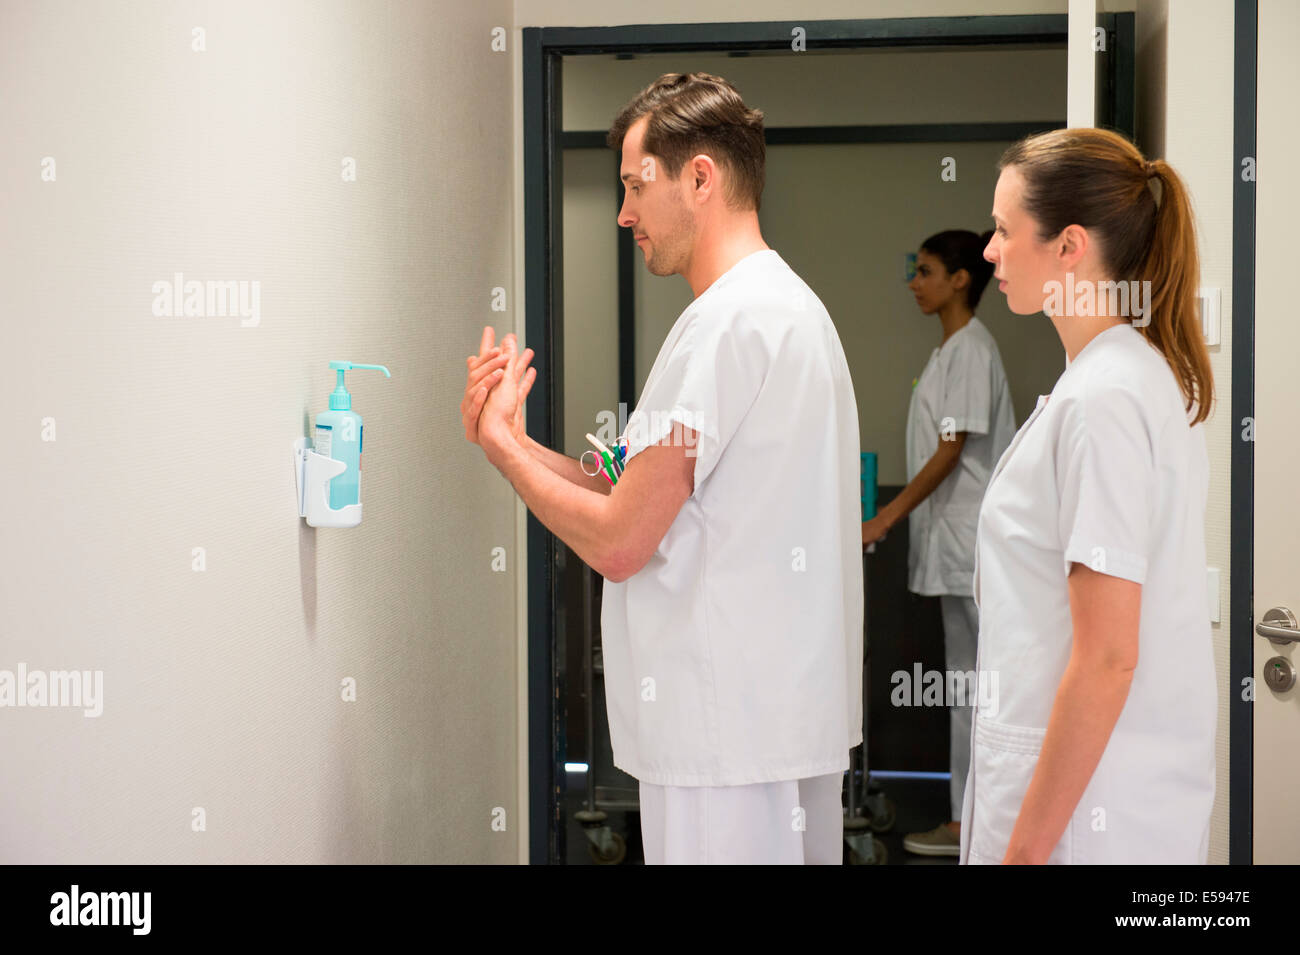 Male doctor using hygiene hand wash in hospital room - Stock Image